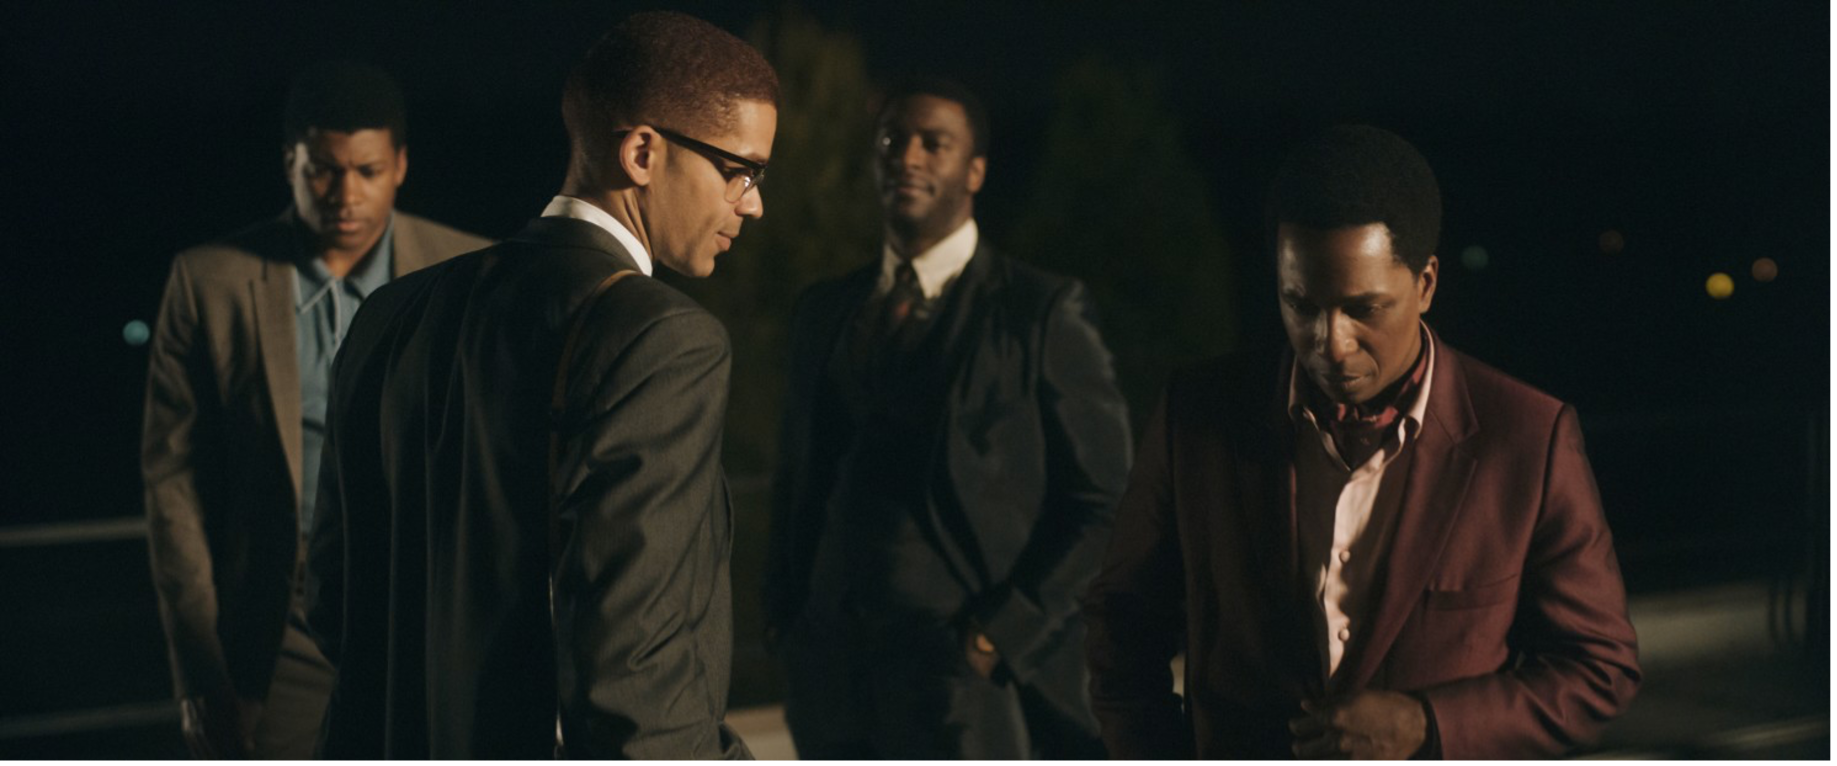 Kingsley Ben-Adir (as Malcolm X) with Leslie Odom Jr. (as Sam Cooke) in the foreground, and Eli Goree (as Cassius Clay) with Aldis Hodge (as Jim Brown) in the background